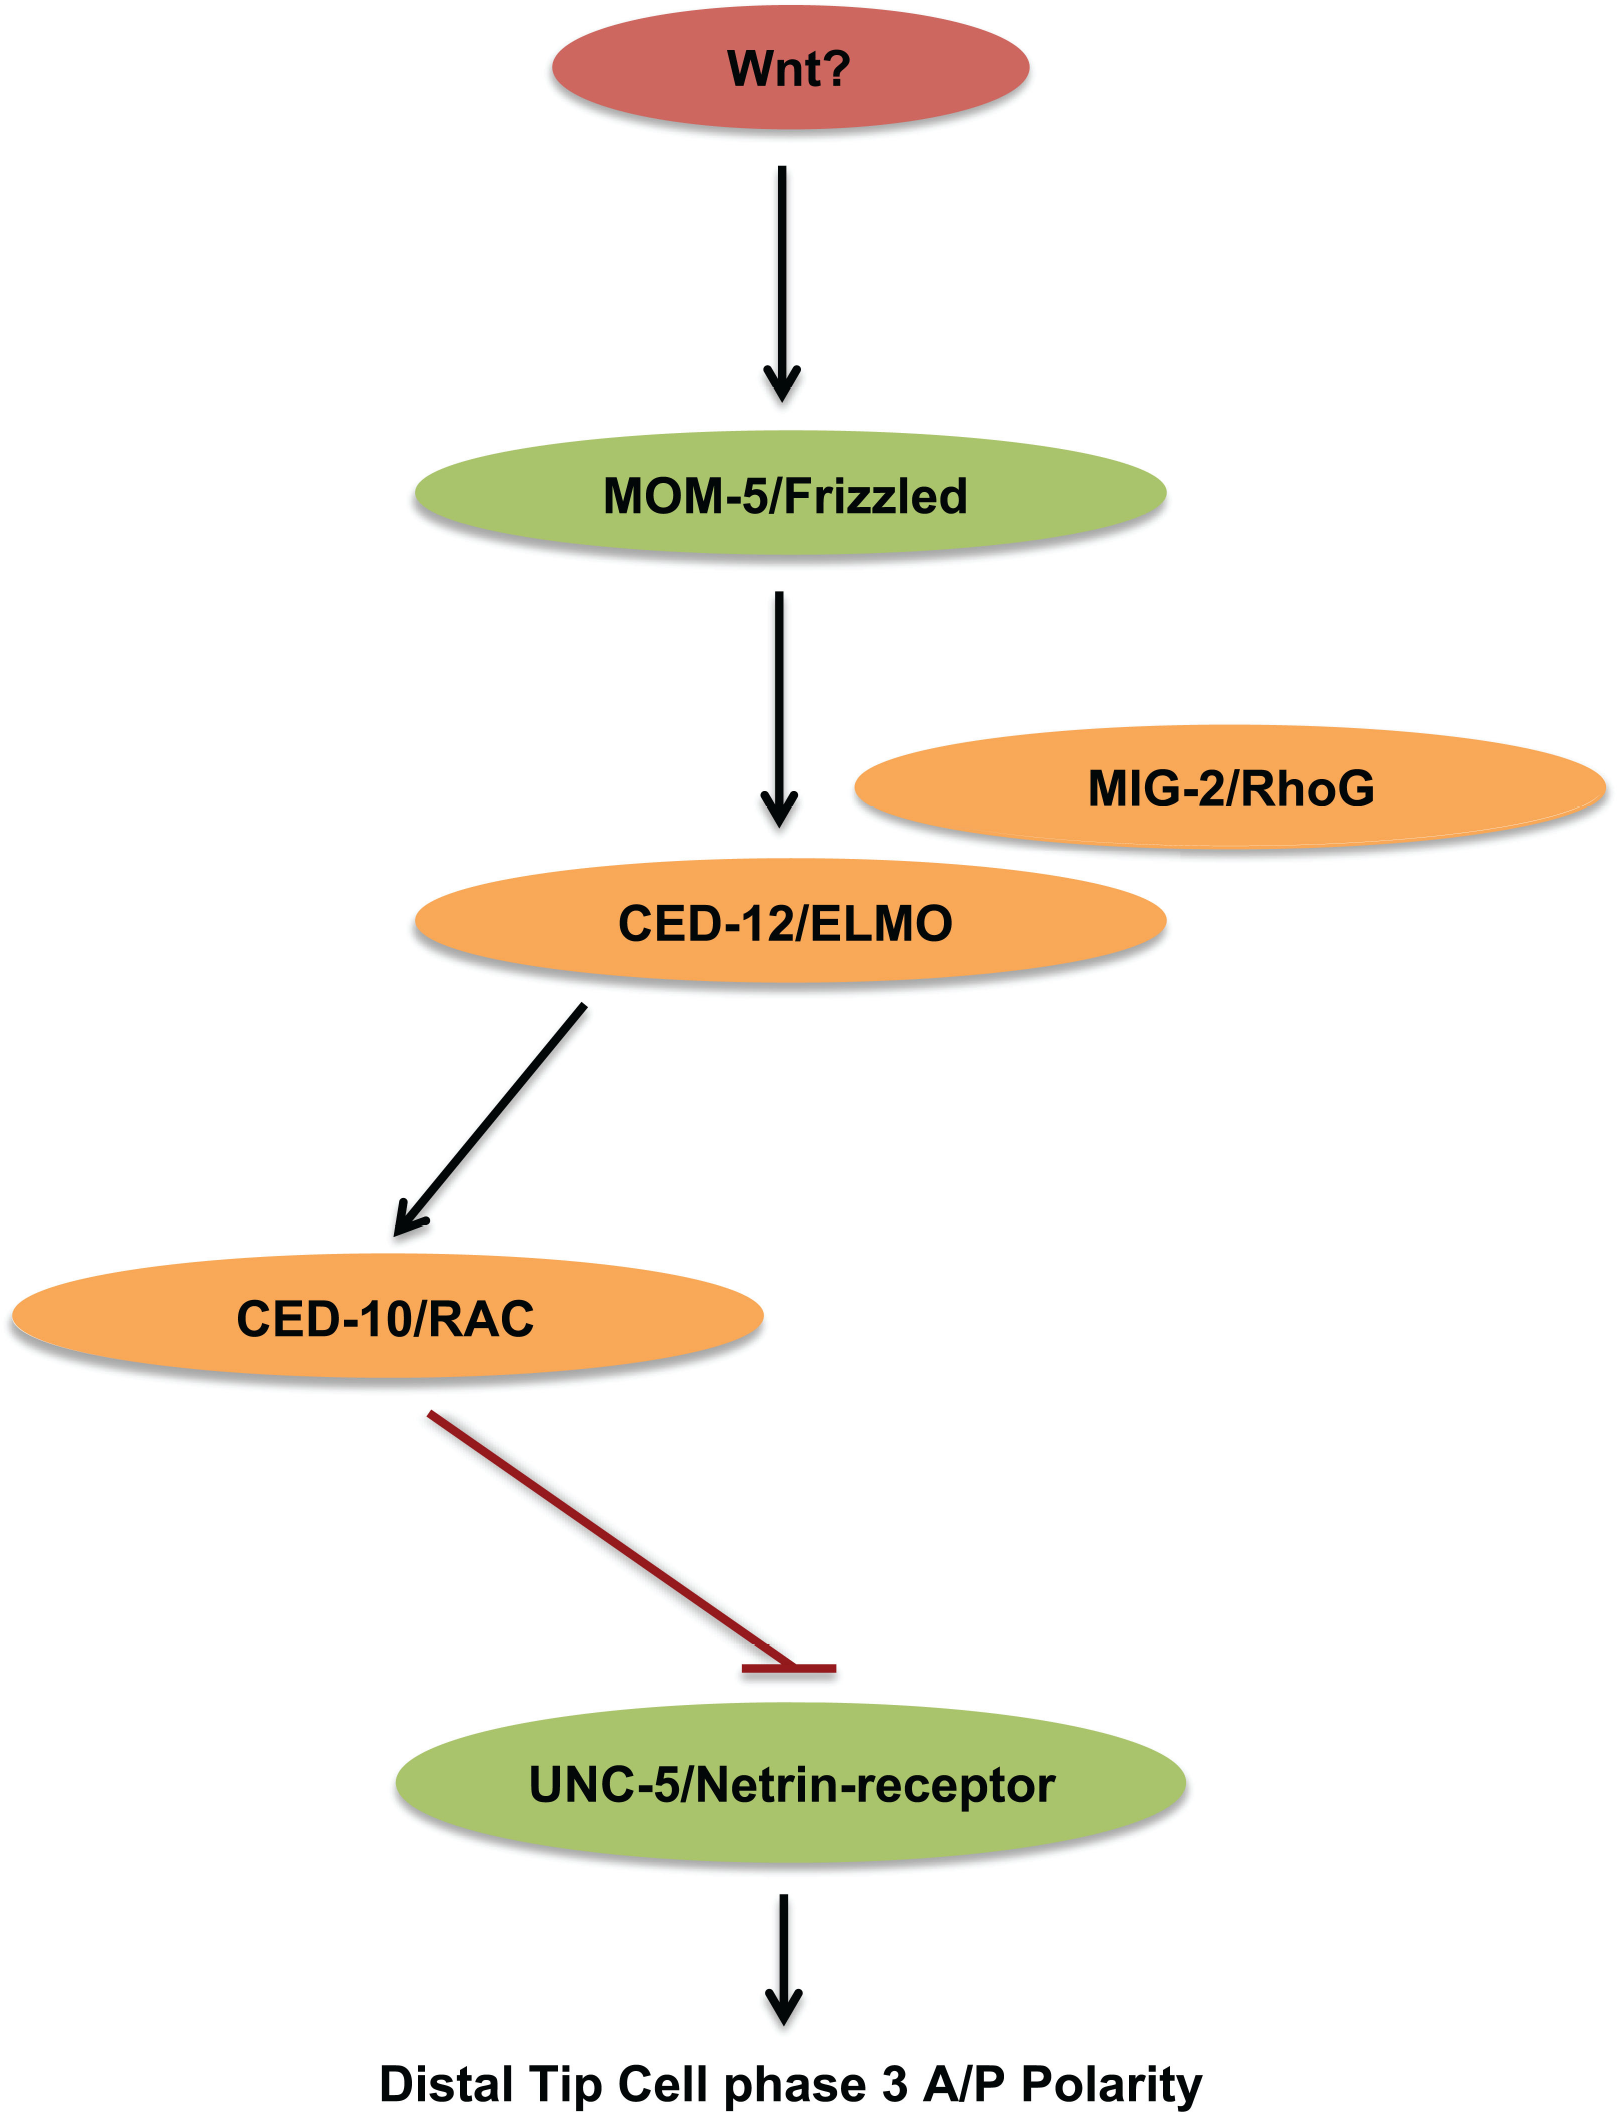 MOM-5/Frizzled through small GTPases functions to negatively regulate the UNC-5 receptor for UNC-6/Netrin.